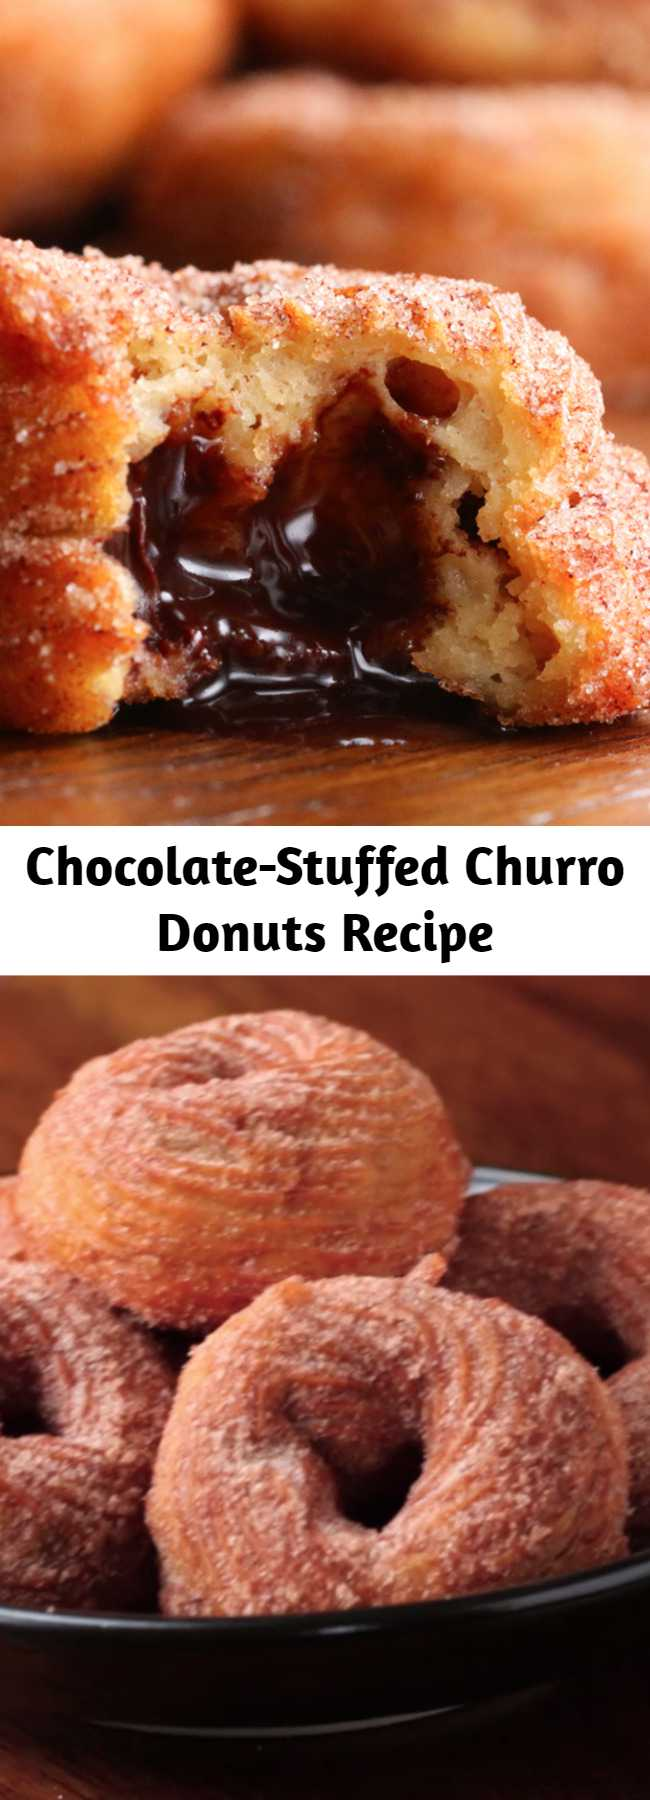 Chocolate-Stuffed Churro Donuts Recipe - This is a super cool recipe. Super fun and delicious 😋